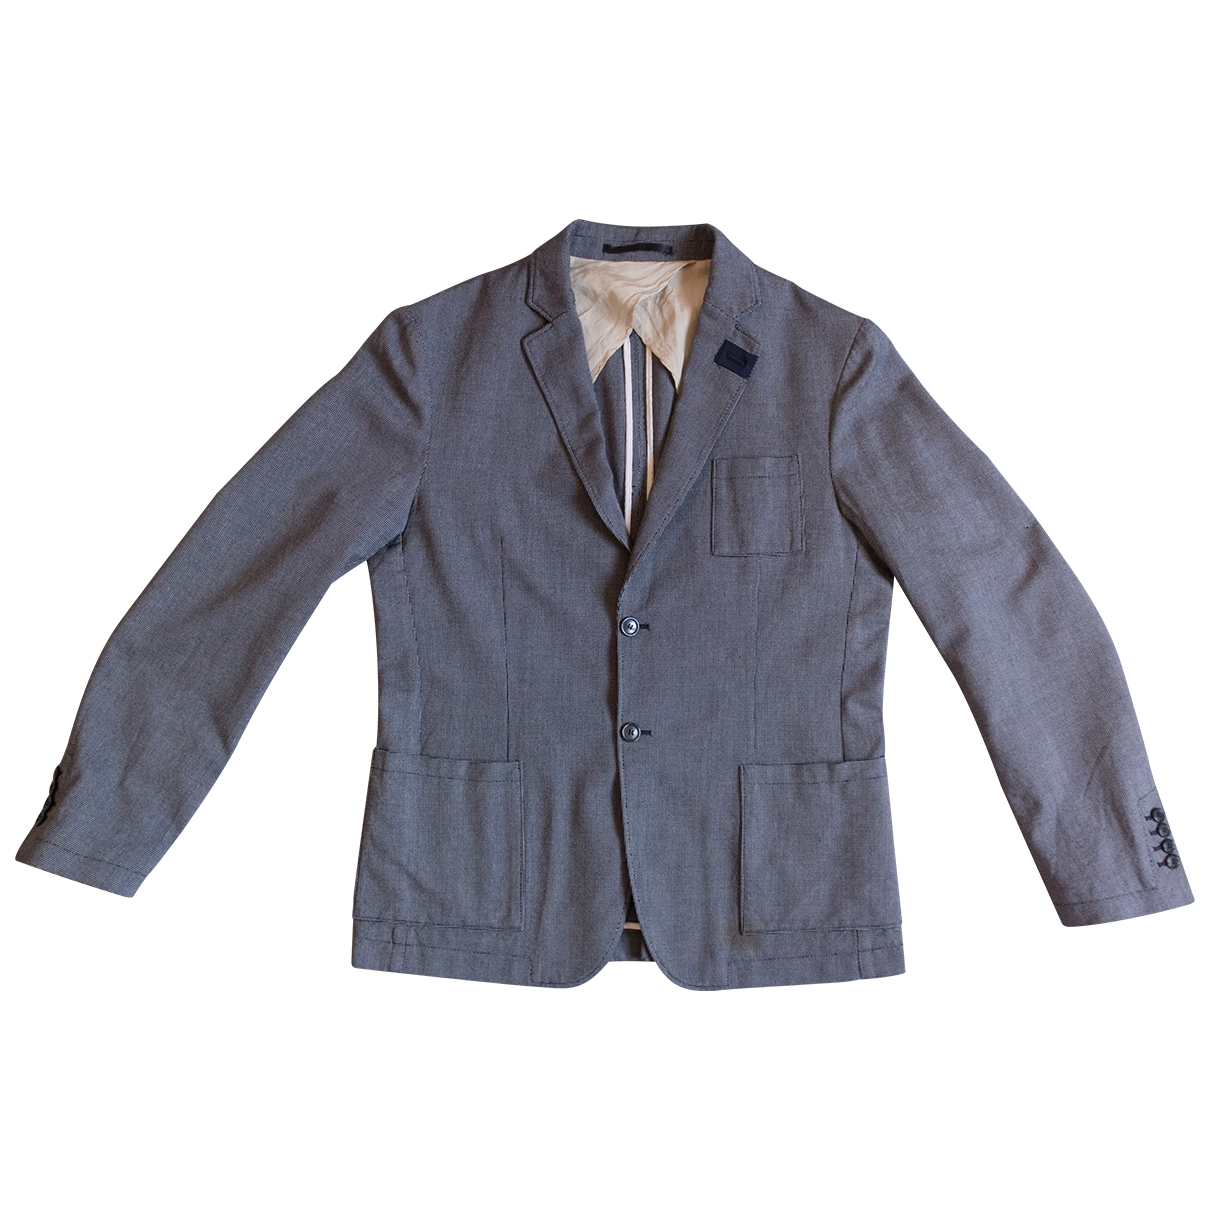 Mauro Grifoni \N Grey Cotton jacket  for Men 52 IT